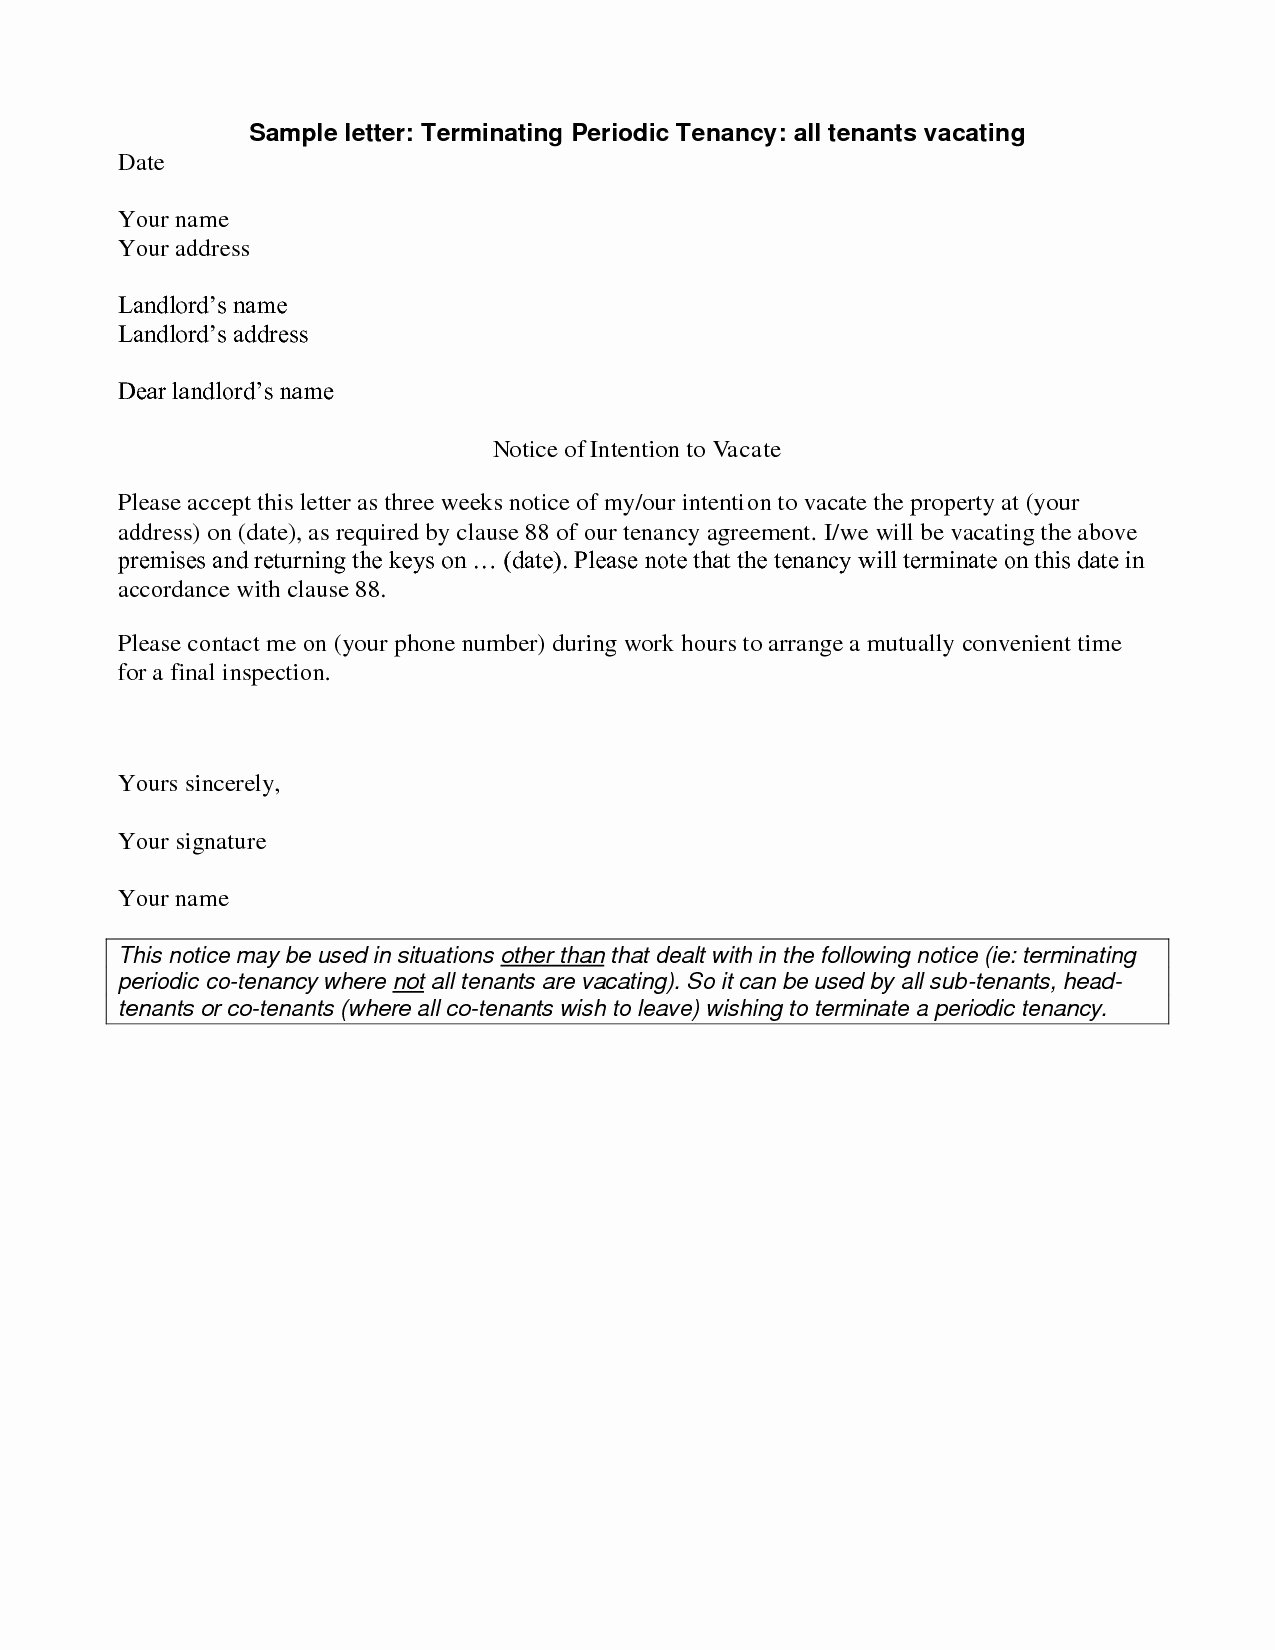 Notice to Vacate Letter Template Awesome Notice to Vacate Apartment Letter Template Samples